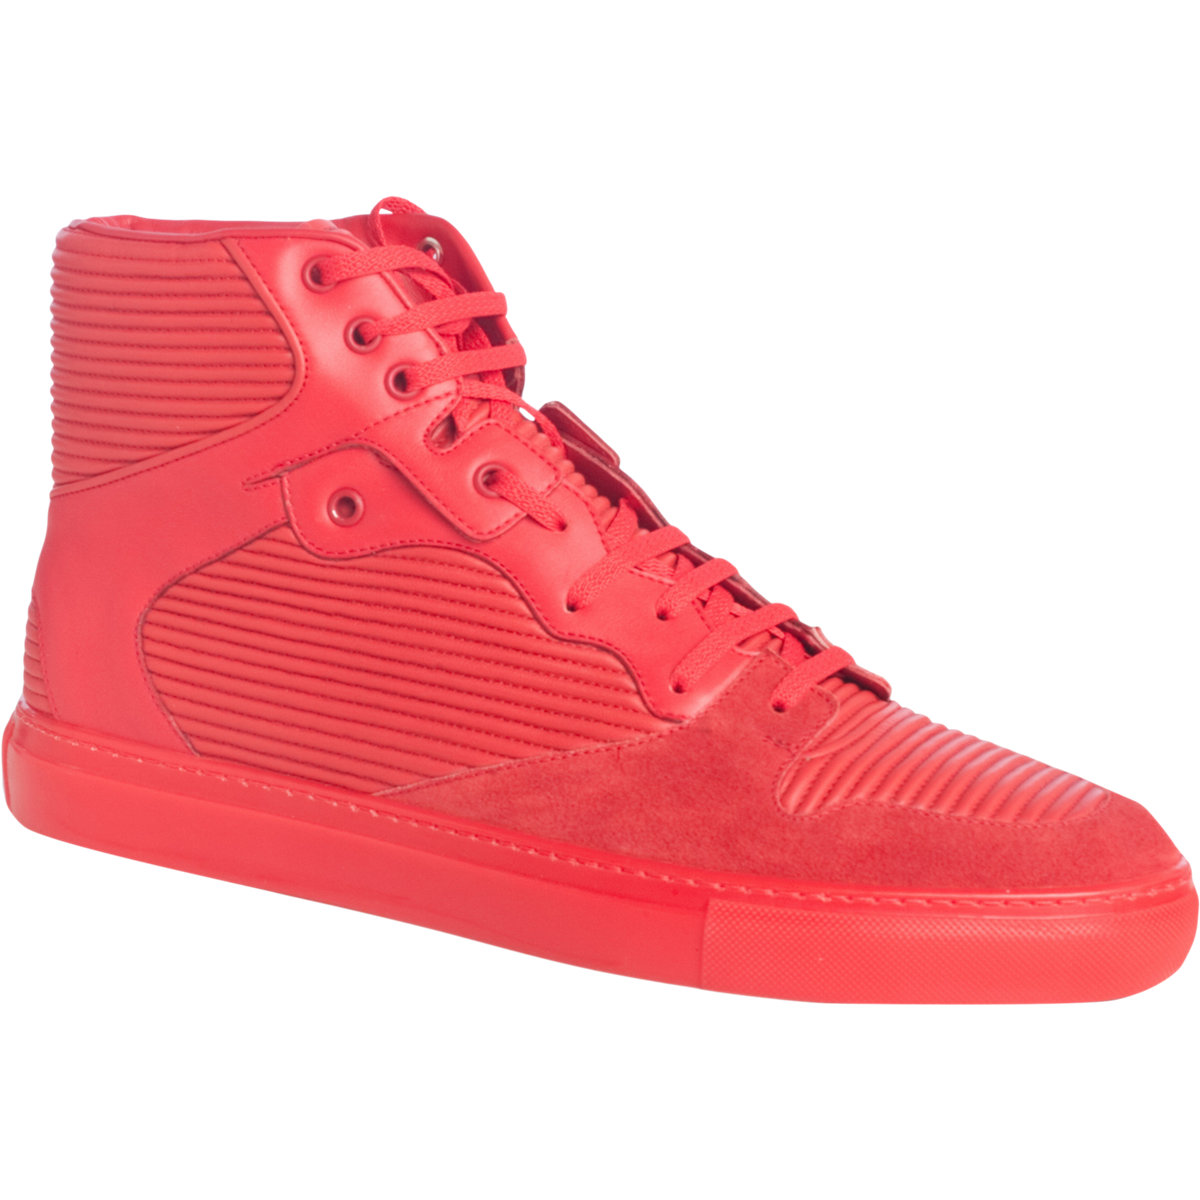 Balenciaga Sneakers bring in their quirky, modern, and colorful styles like Balenciaga Red Sneakers and the Balenciaga Black Sneakers into a durable shoe. These retro sneakers work with simple outfits instantly giving them a daring vibe that everyone has to take a second look.